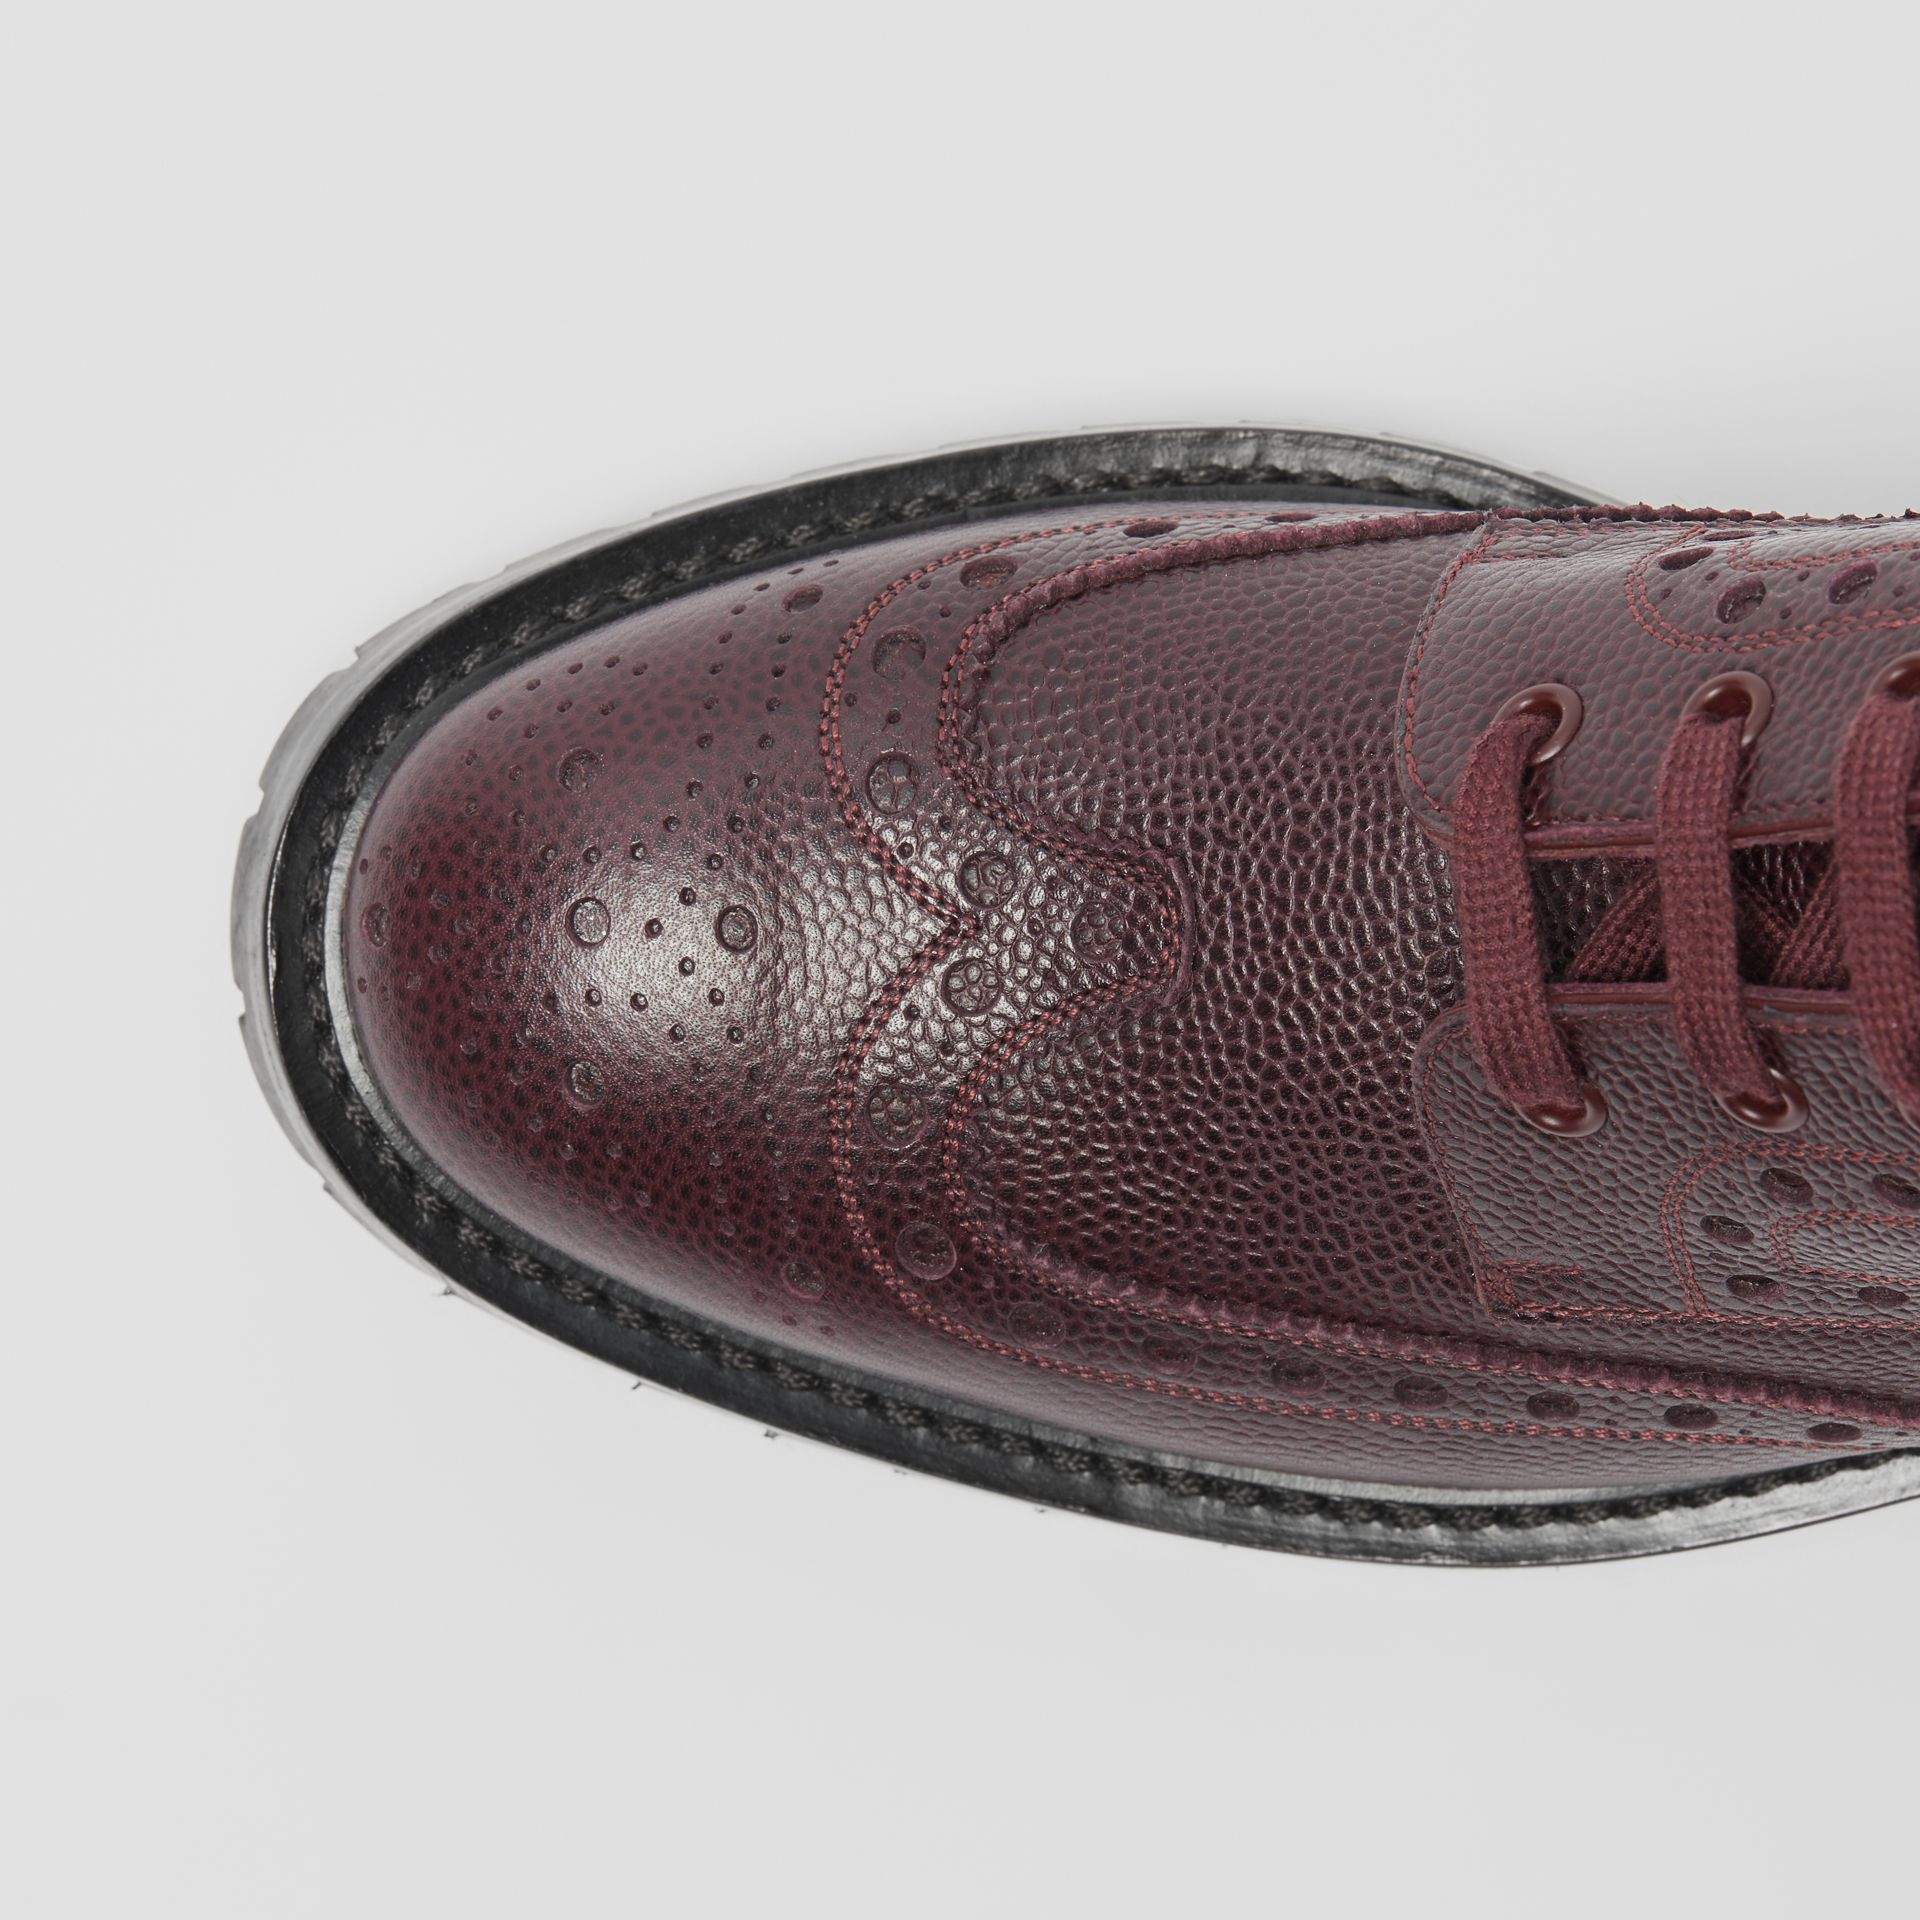 Brogue Detail Grainy Leather Boots in Bordeaux - Men | Burberry United Kingdom - gallery image 1